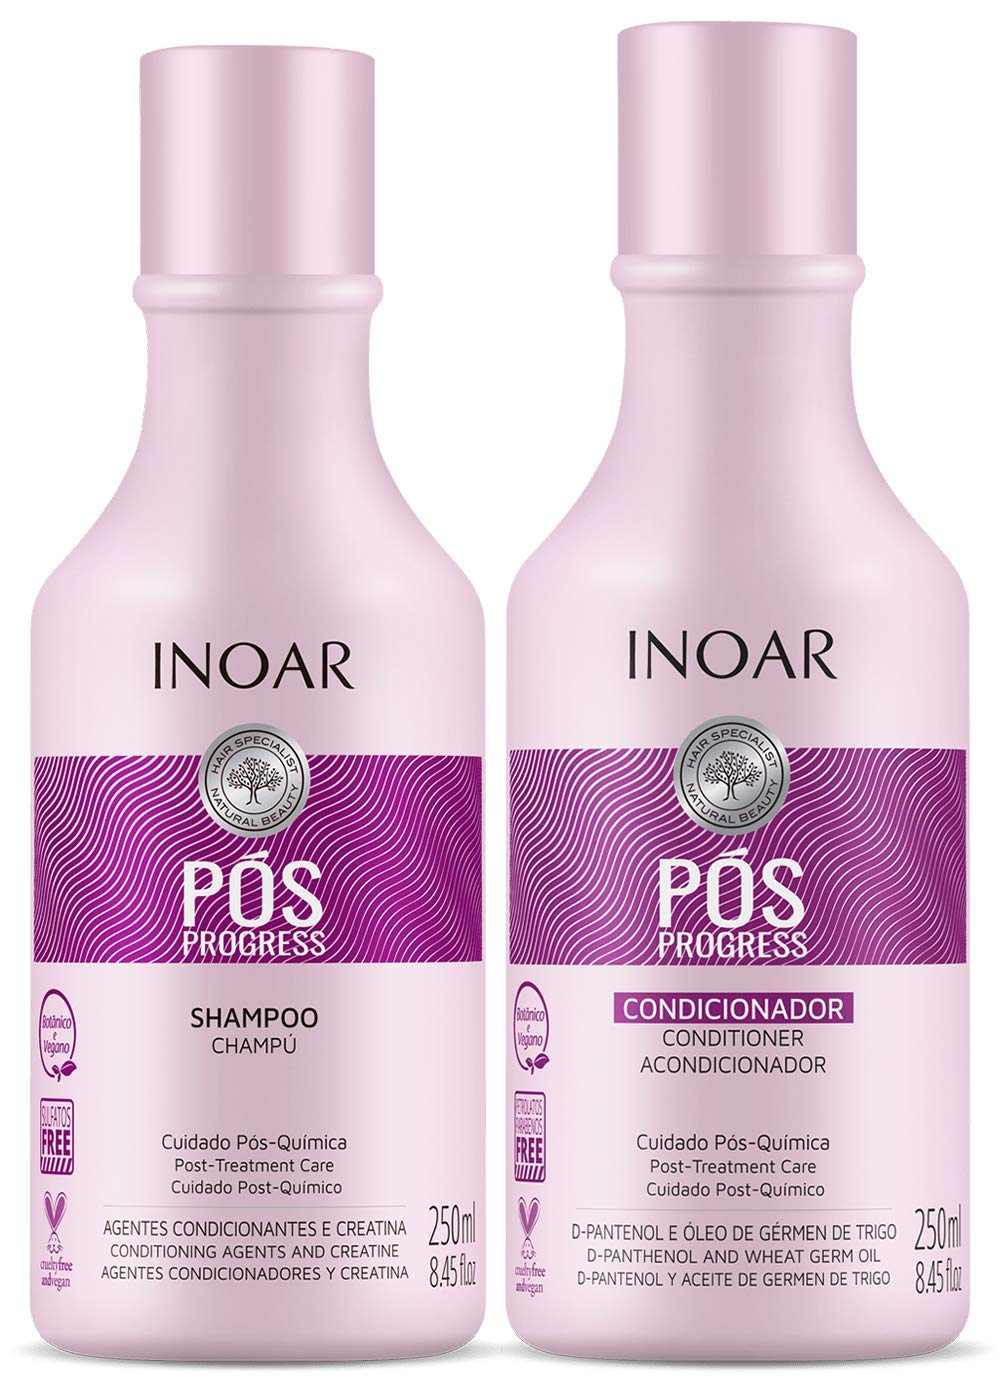 INOAR PROFESSIONAL - POS Progress Shampoo & Conditioner - 2 Step Kit Designed to be Used Between Keratin Treatments to Prolong Their Effectiveness ( 8.45 Ounces / 250 Milliliters )